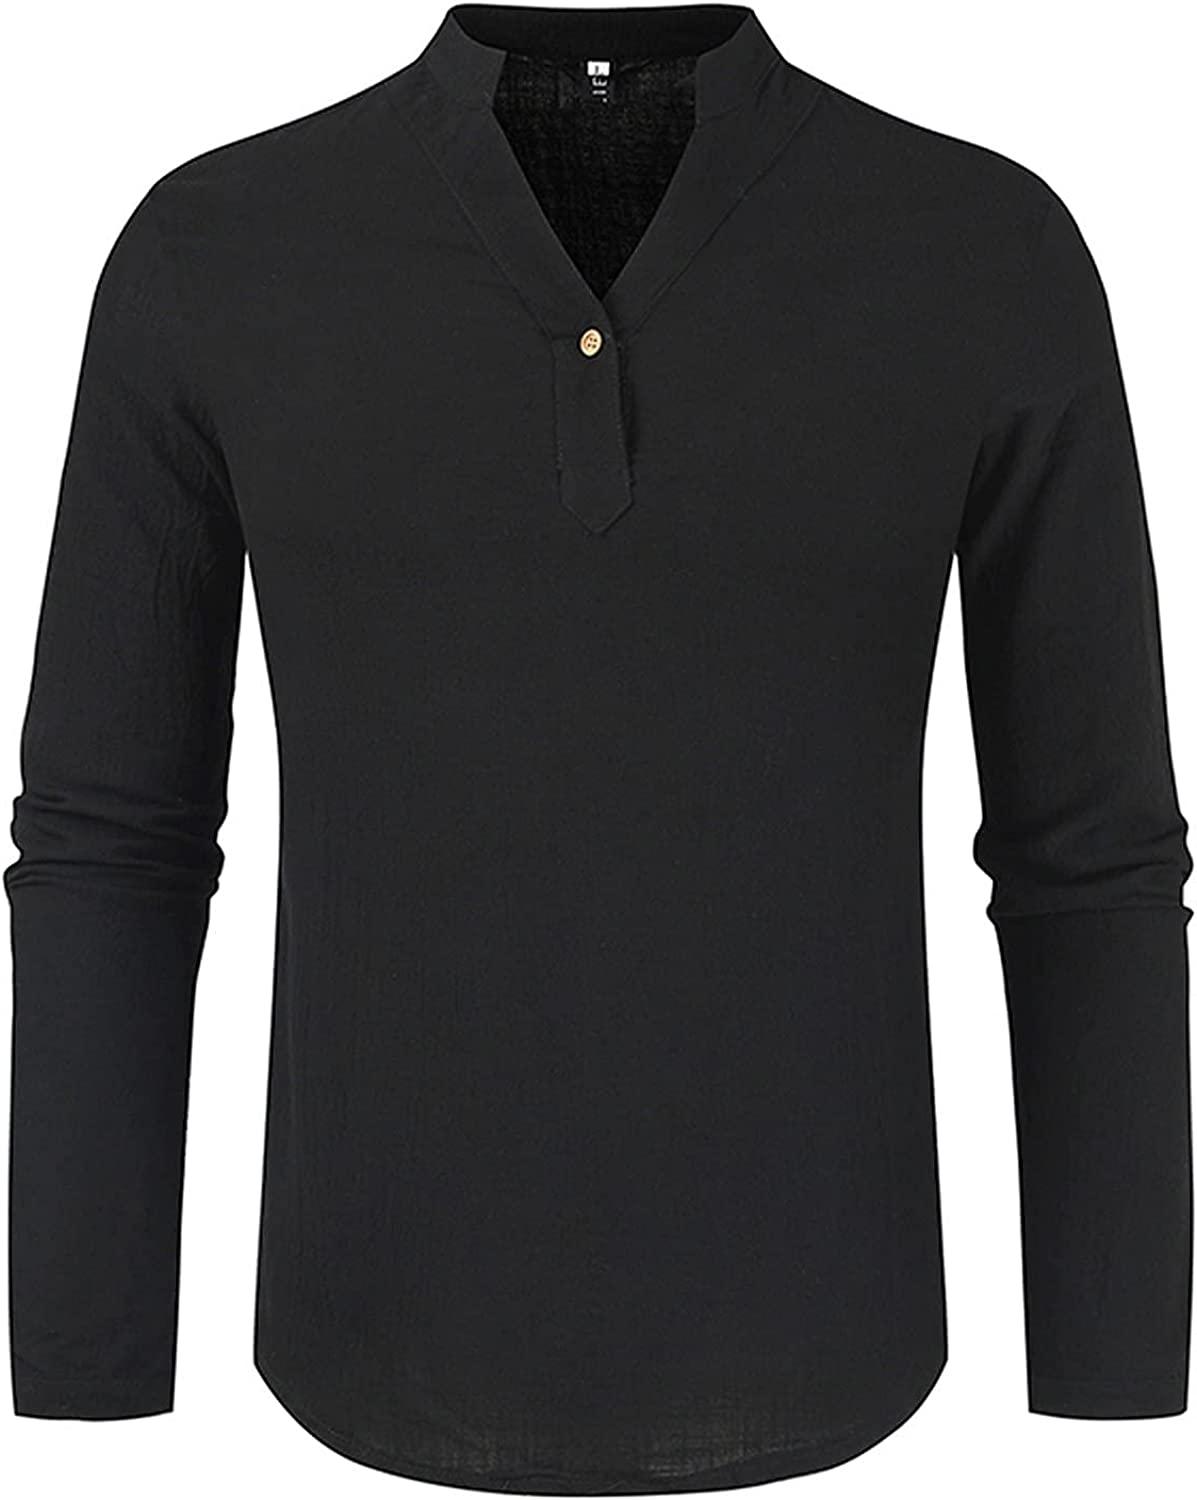 Cotton Linen Casual Tops for Mens, Fall Henley V Neck Long Sleeve Loose Relaxed-fit Solid Color Tee Shirts